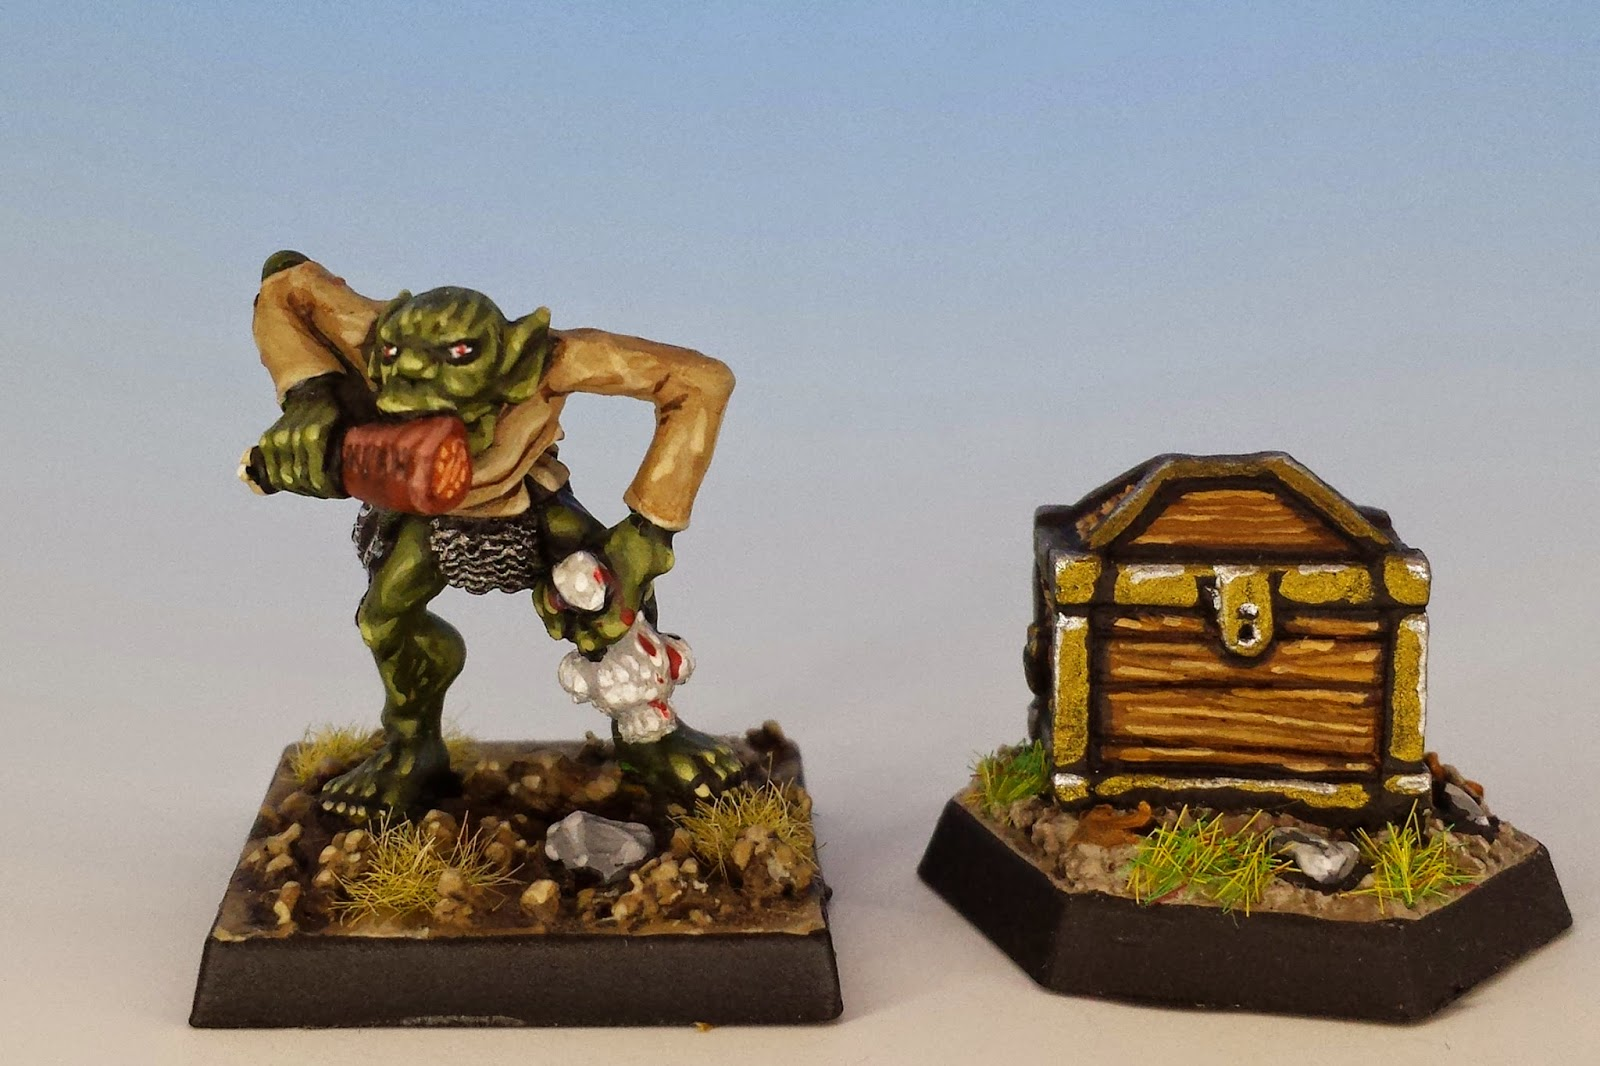 Treasure Chest C39, Citadel Miniatures (1984, sculpted by Rick Priestly)